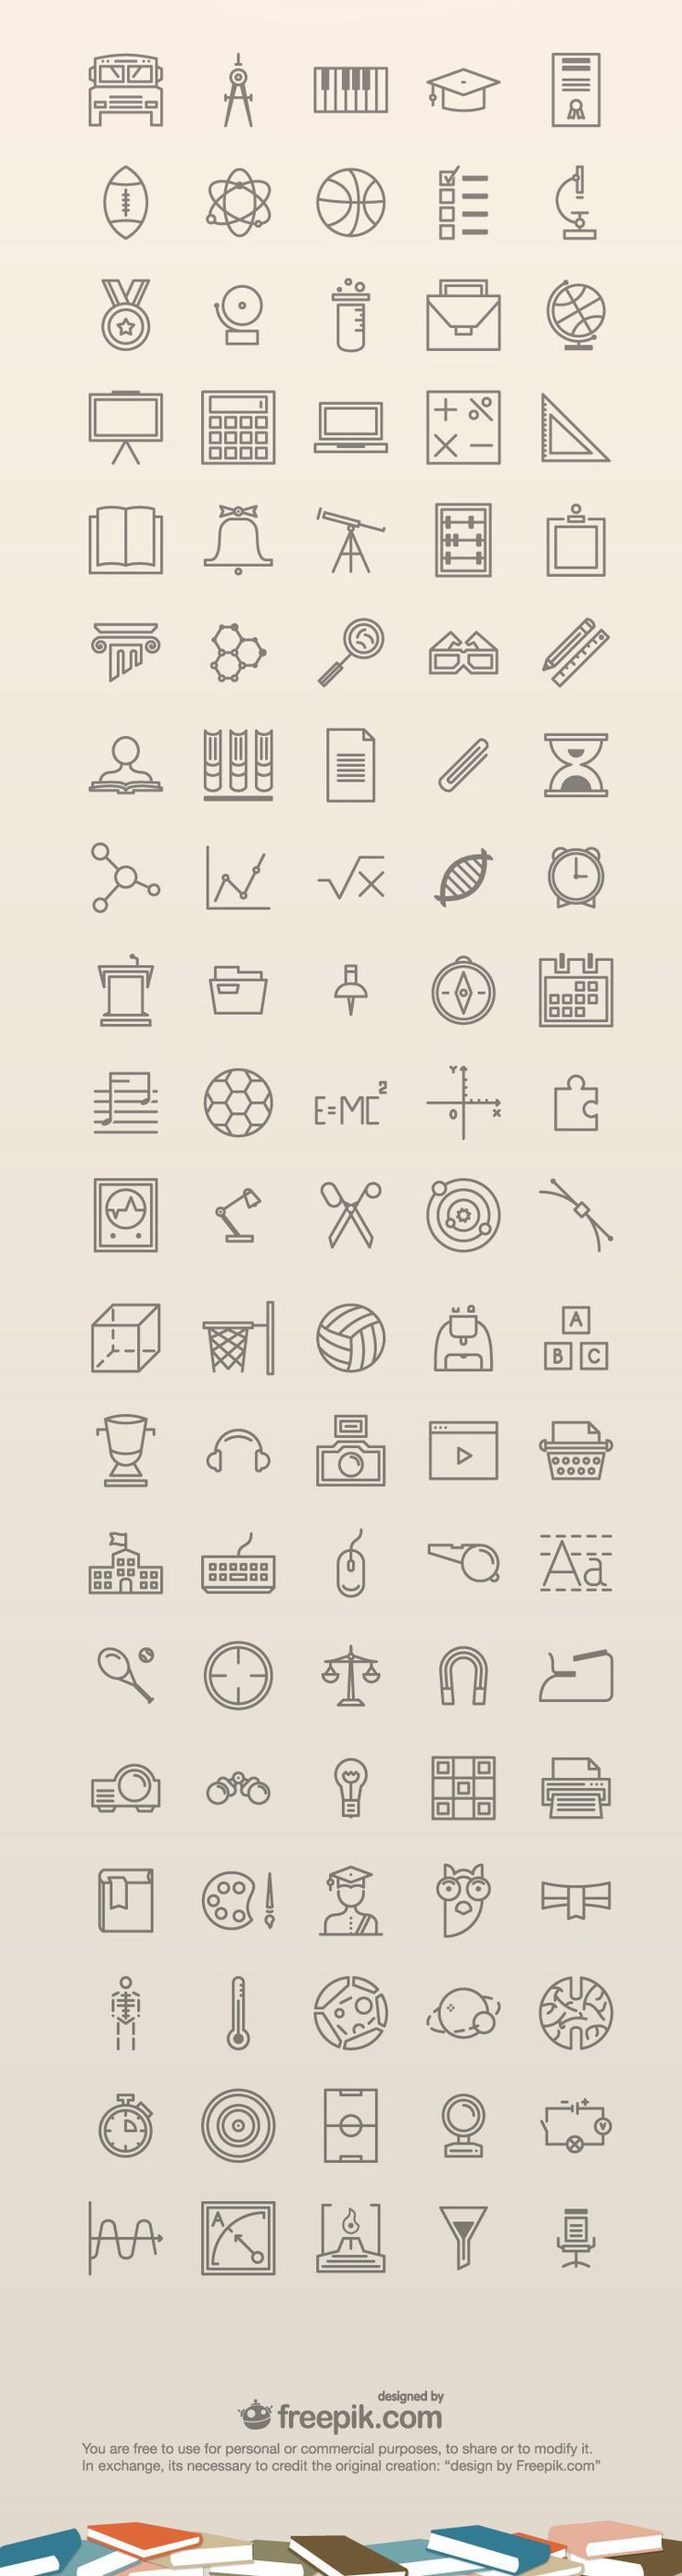 100 Free Education #Icons: